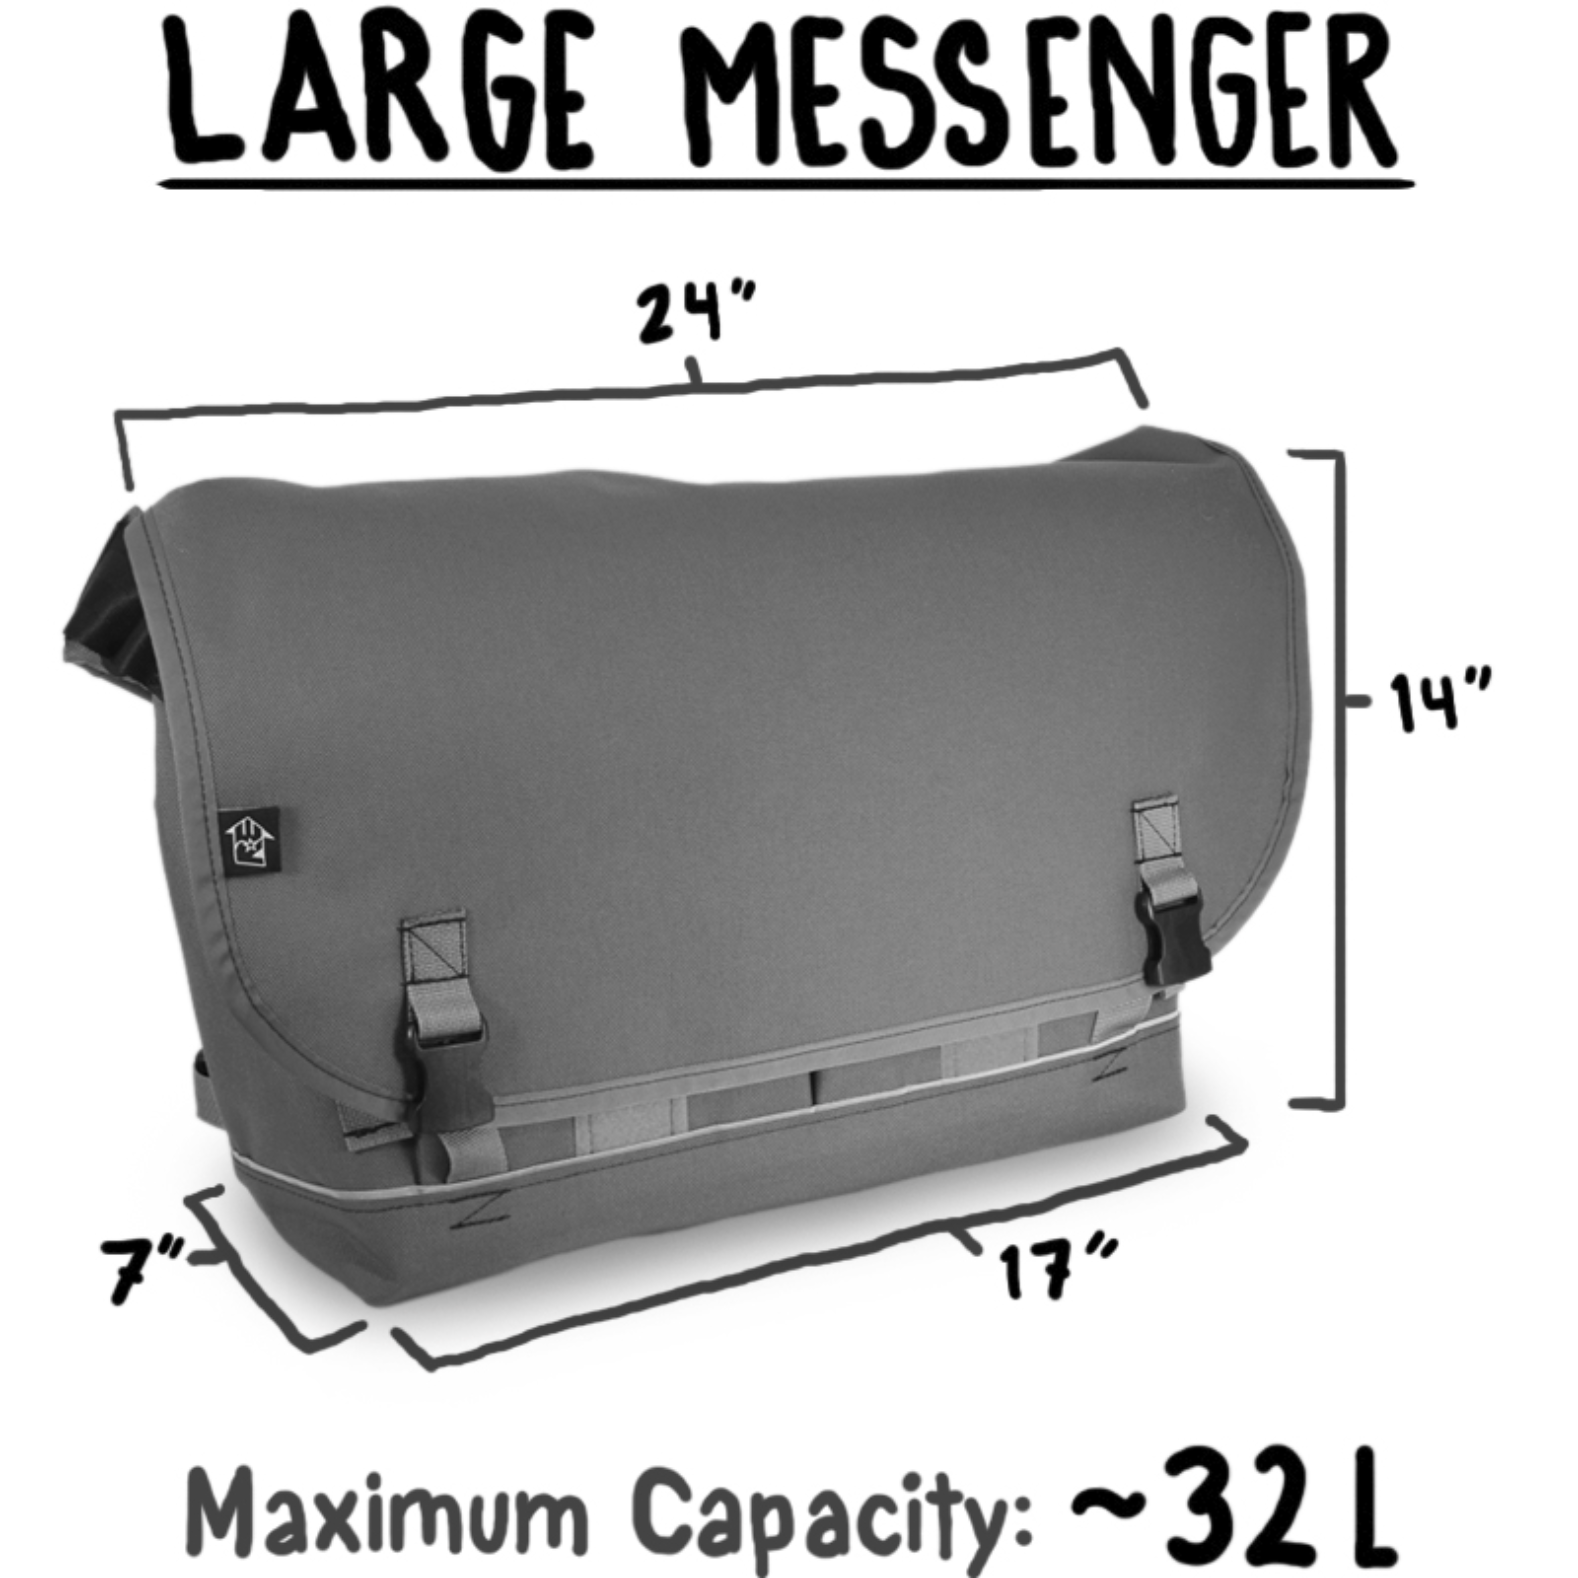 reload messenger large.png